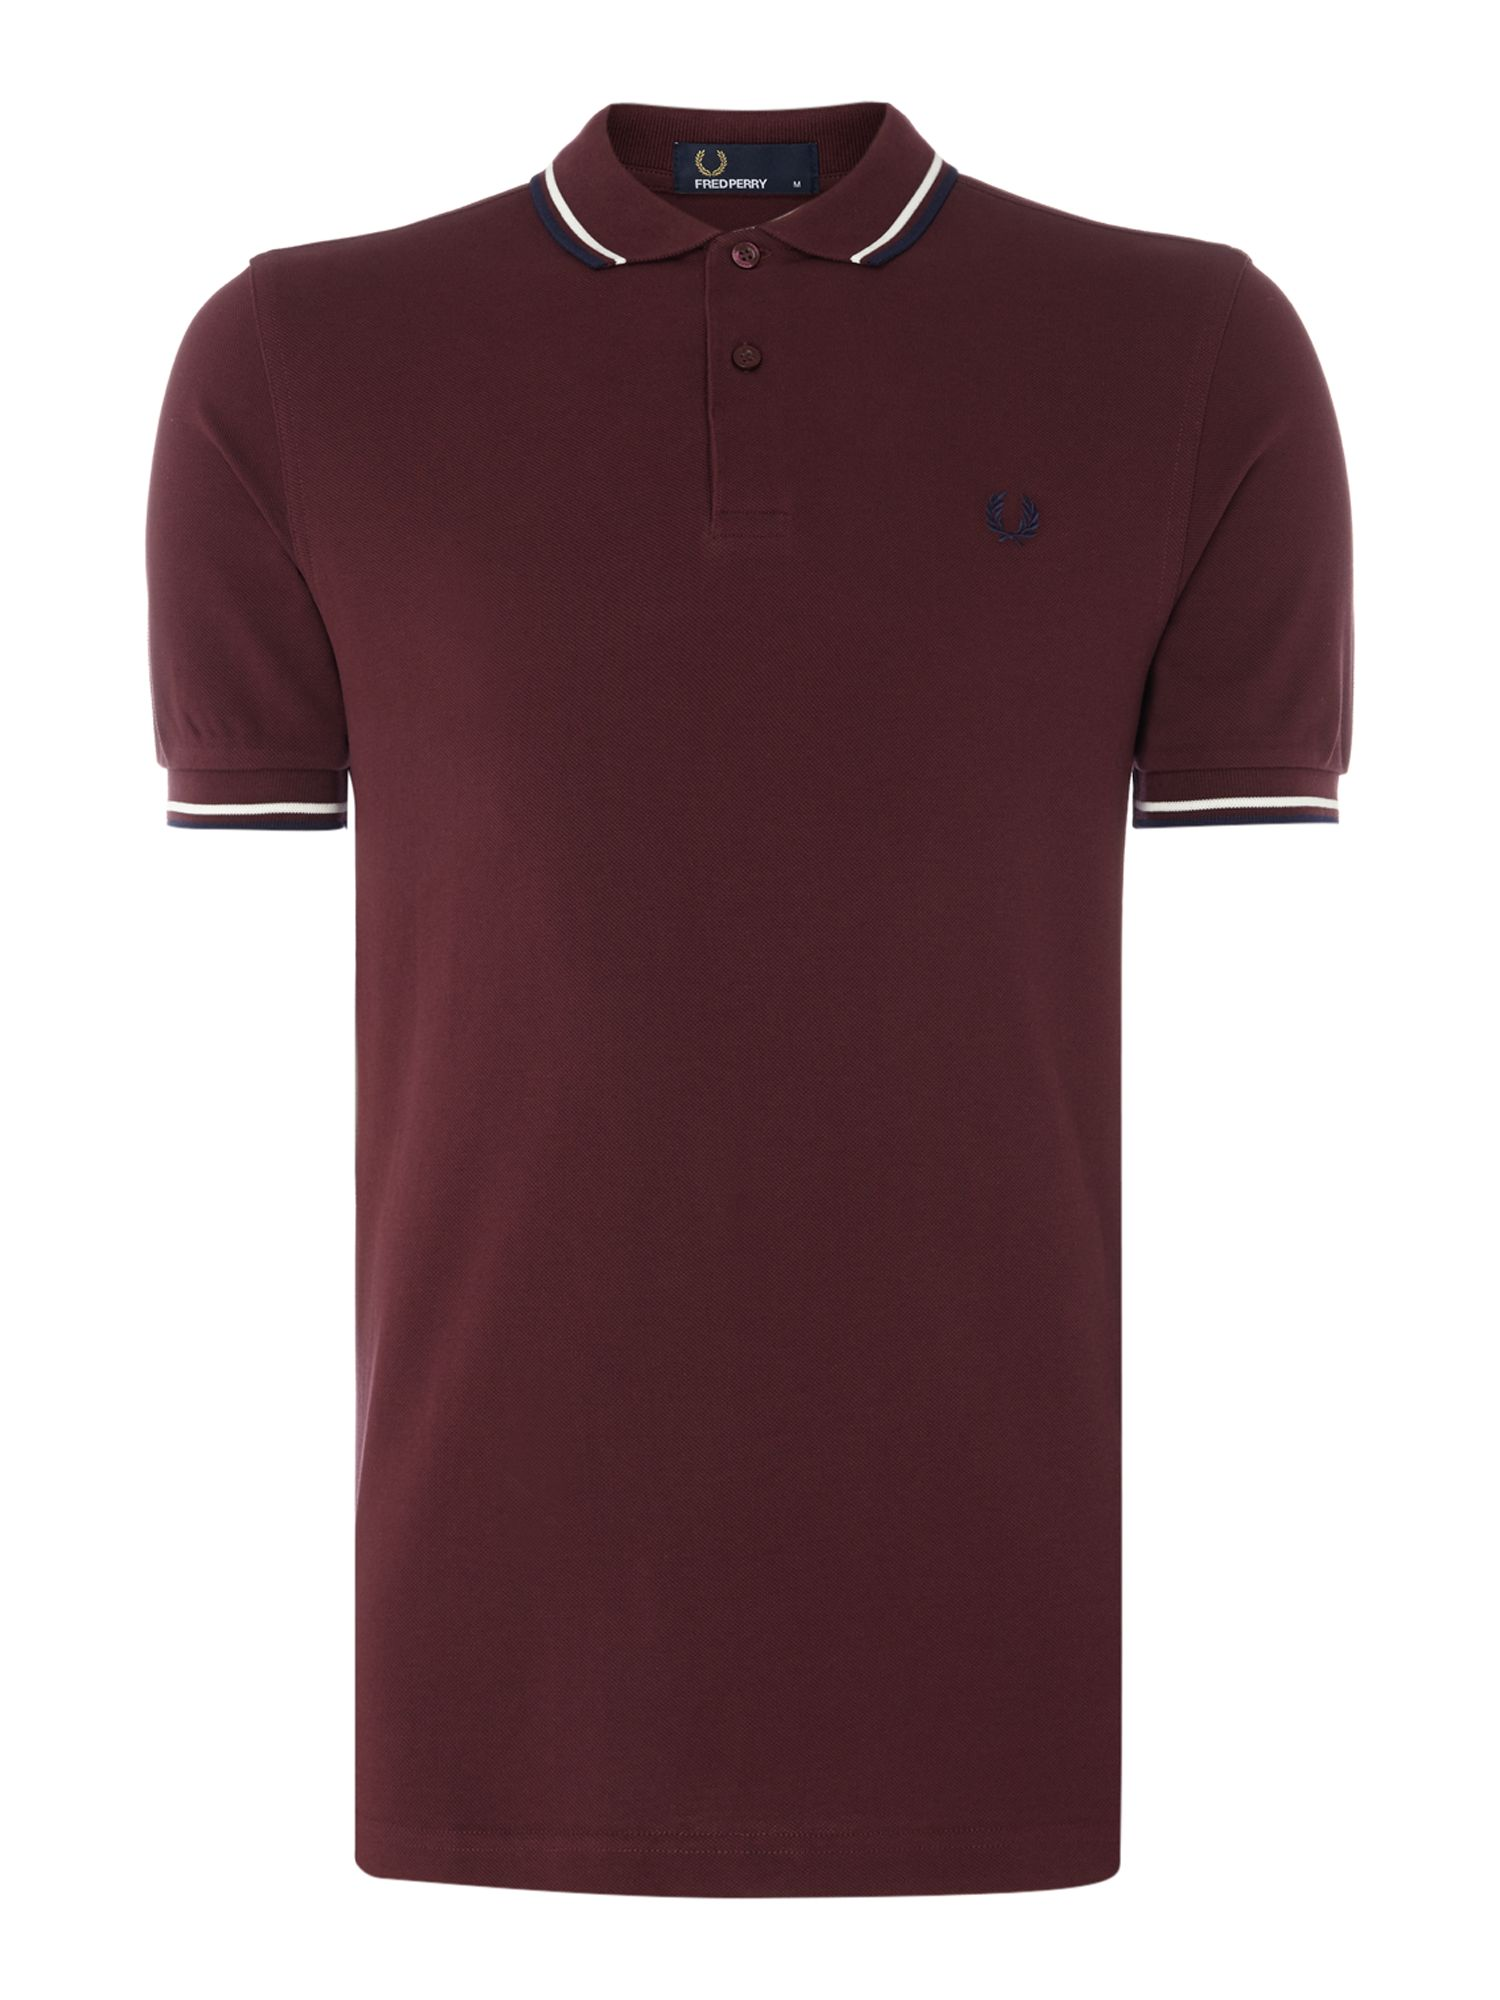 Men's Fred Perry Plain Twin Tipped Polo Shirt, Claret